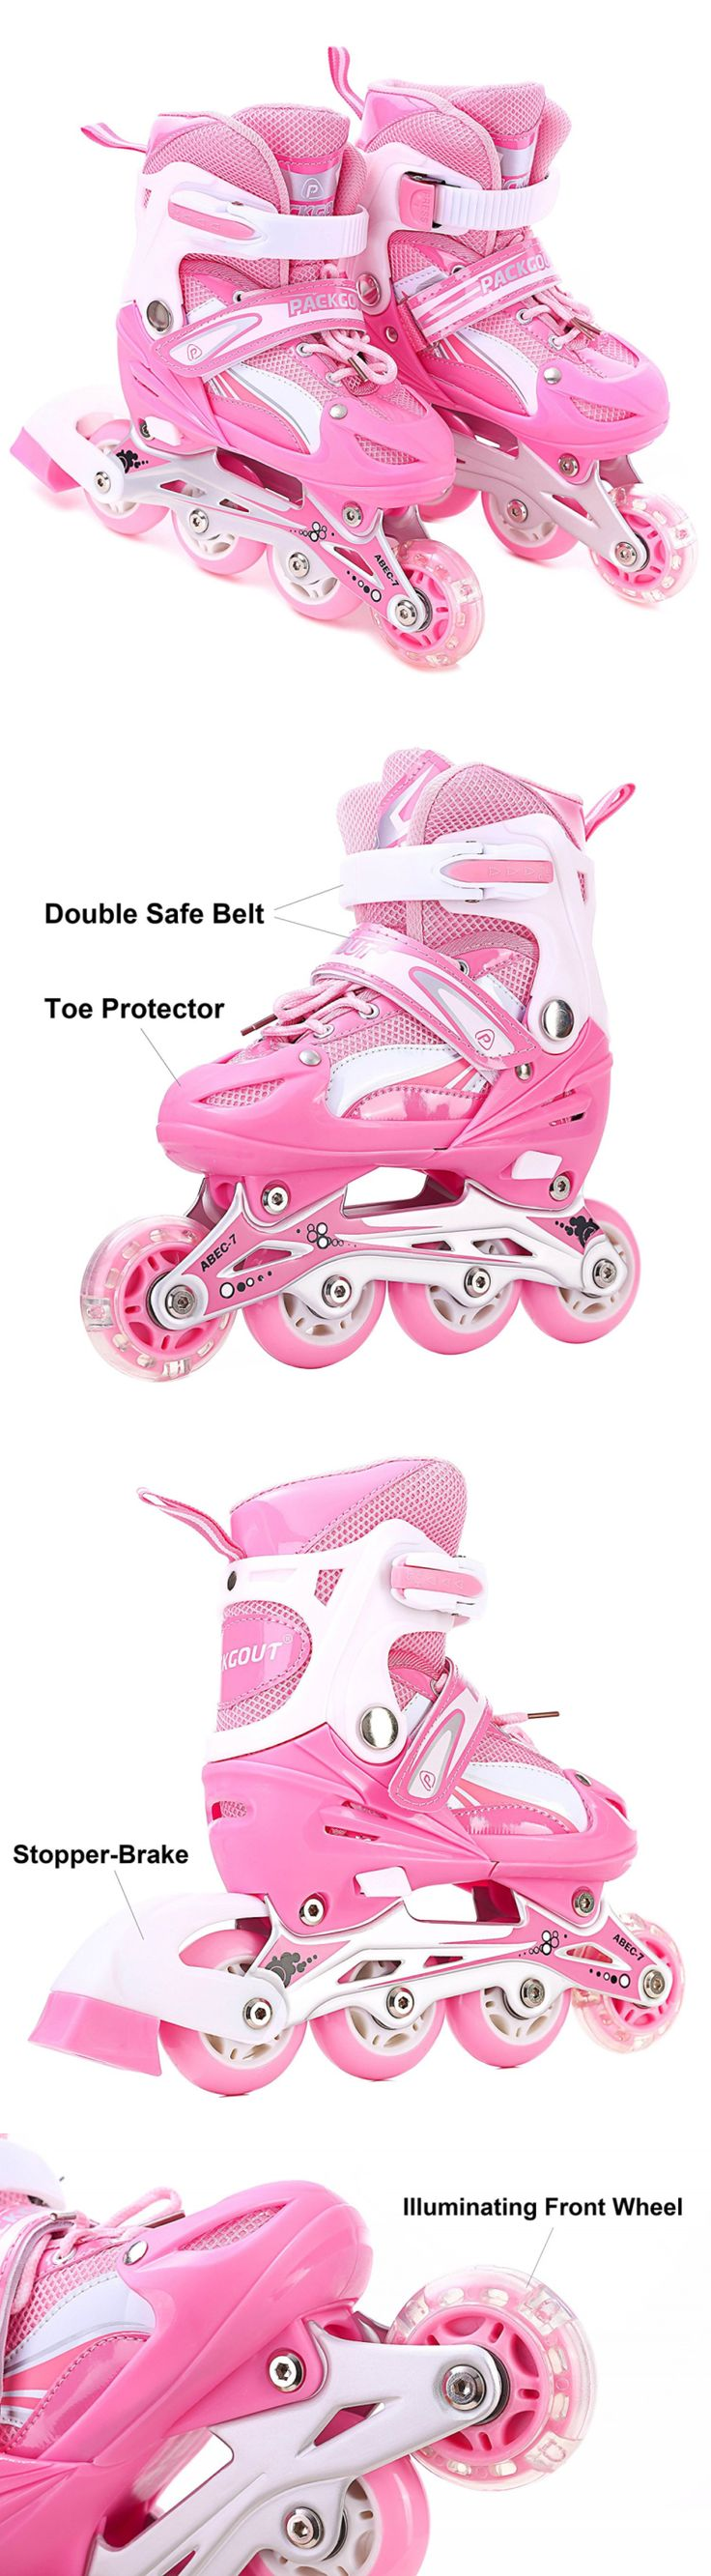 Youth 71156: Girls Inline Skates Adjustable Rollerblades For Kids Girls With Illuminating Whe BUY IT NOW ONLY: $37.5